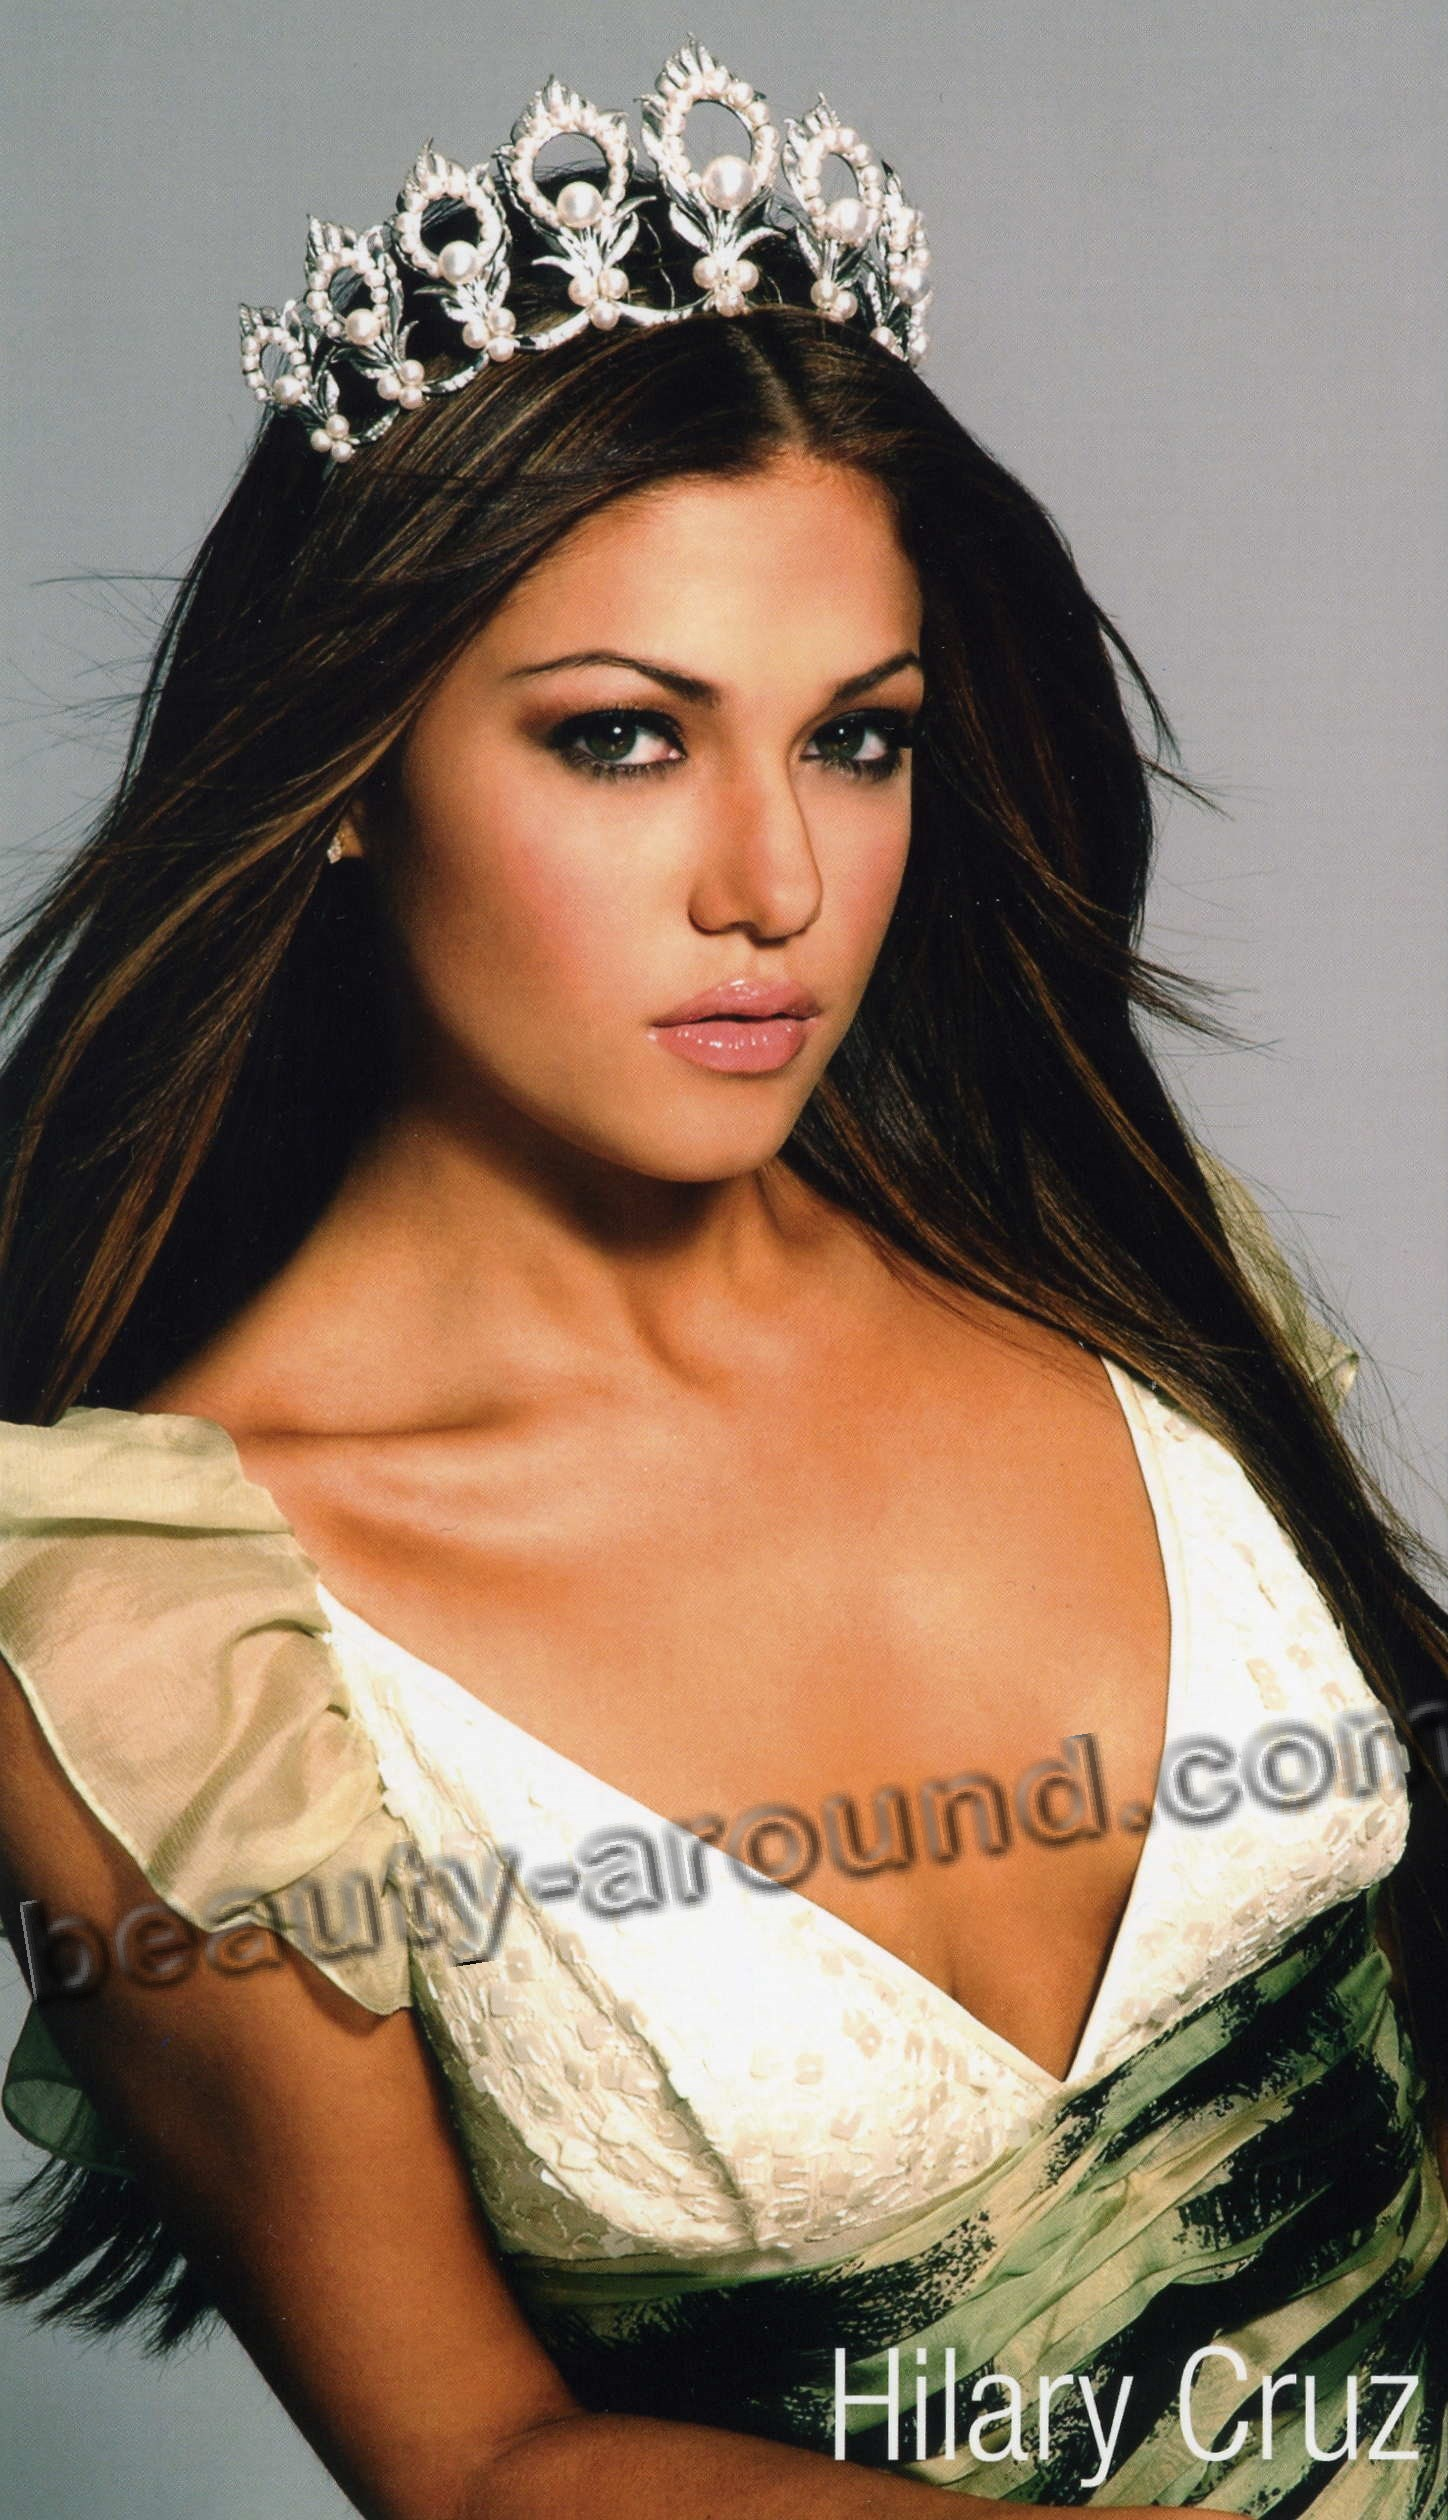 Hilary Cruz Miss Teen USA 2007 photo